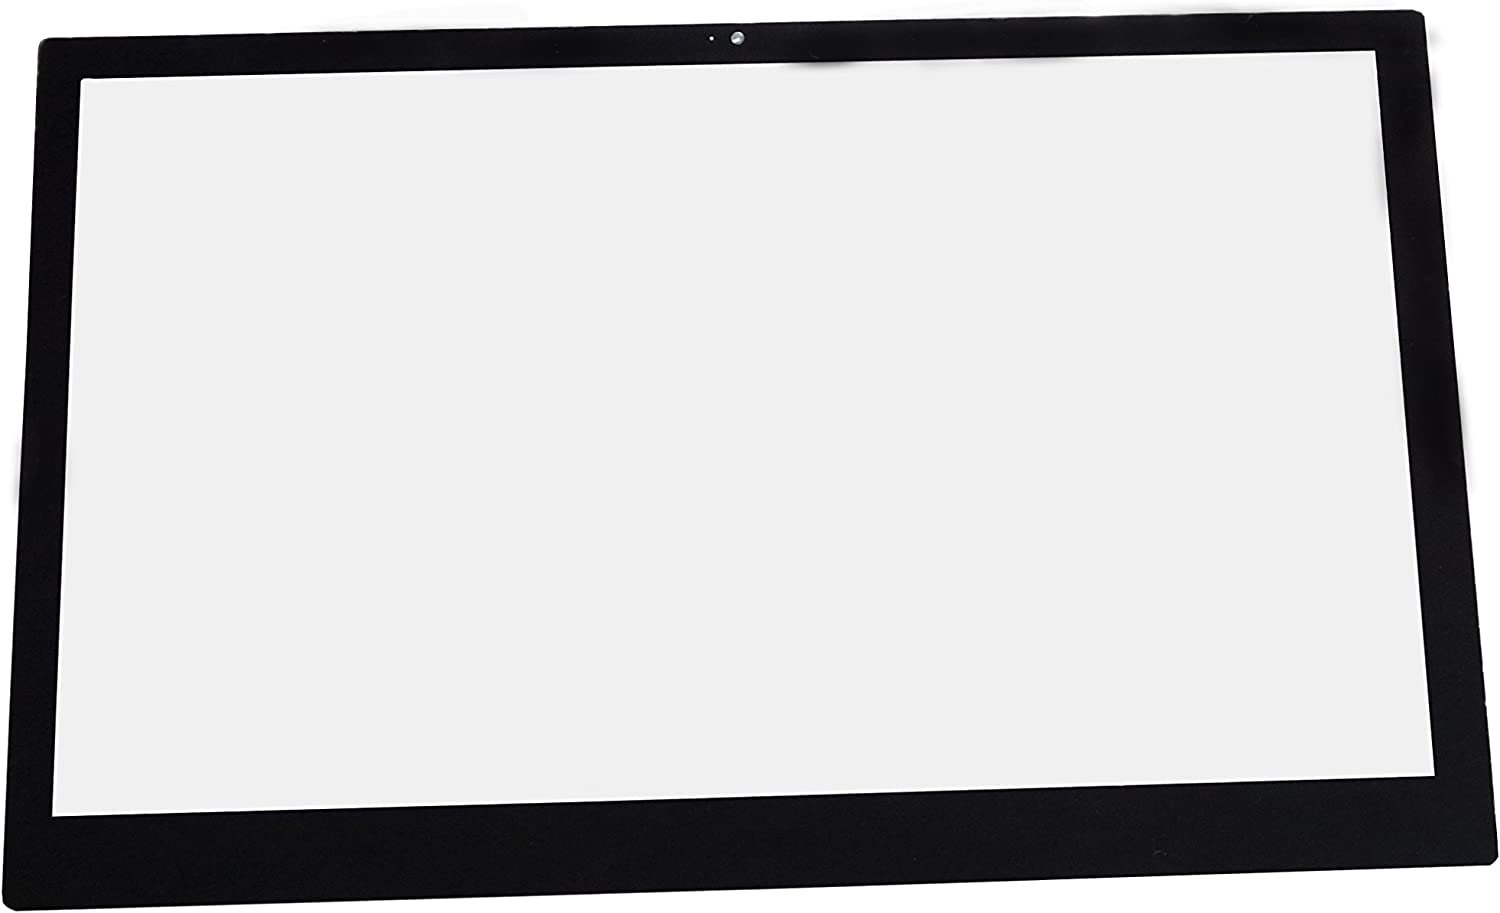 Kreplacement Touch Screen Digitizer Sensor Glass Lens Panel Touch Replacement Part for 15.6 inch Acer Aspire m5-582pt-6852